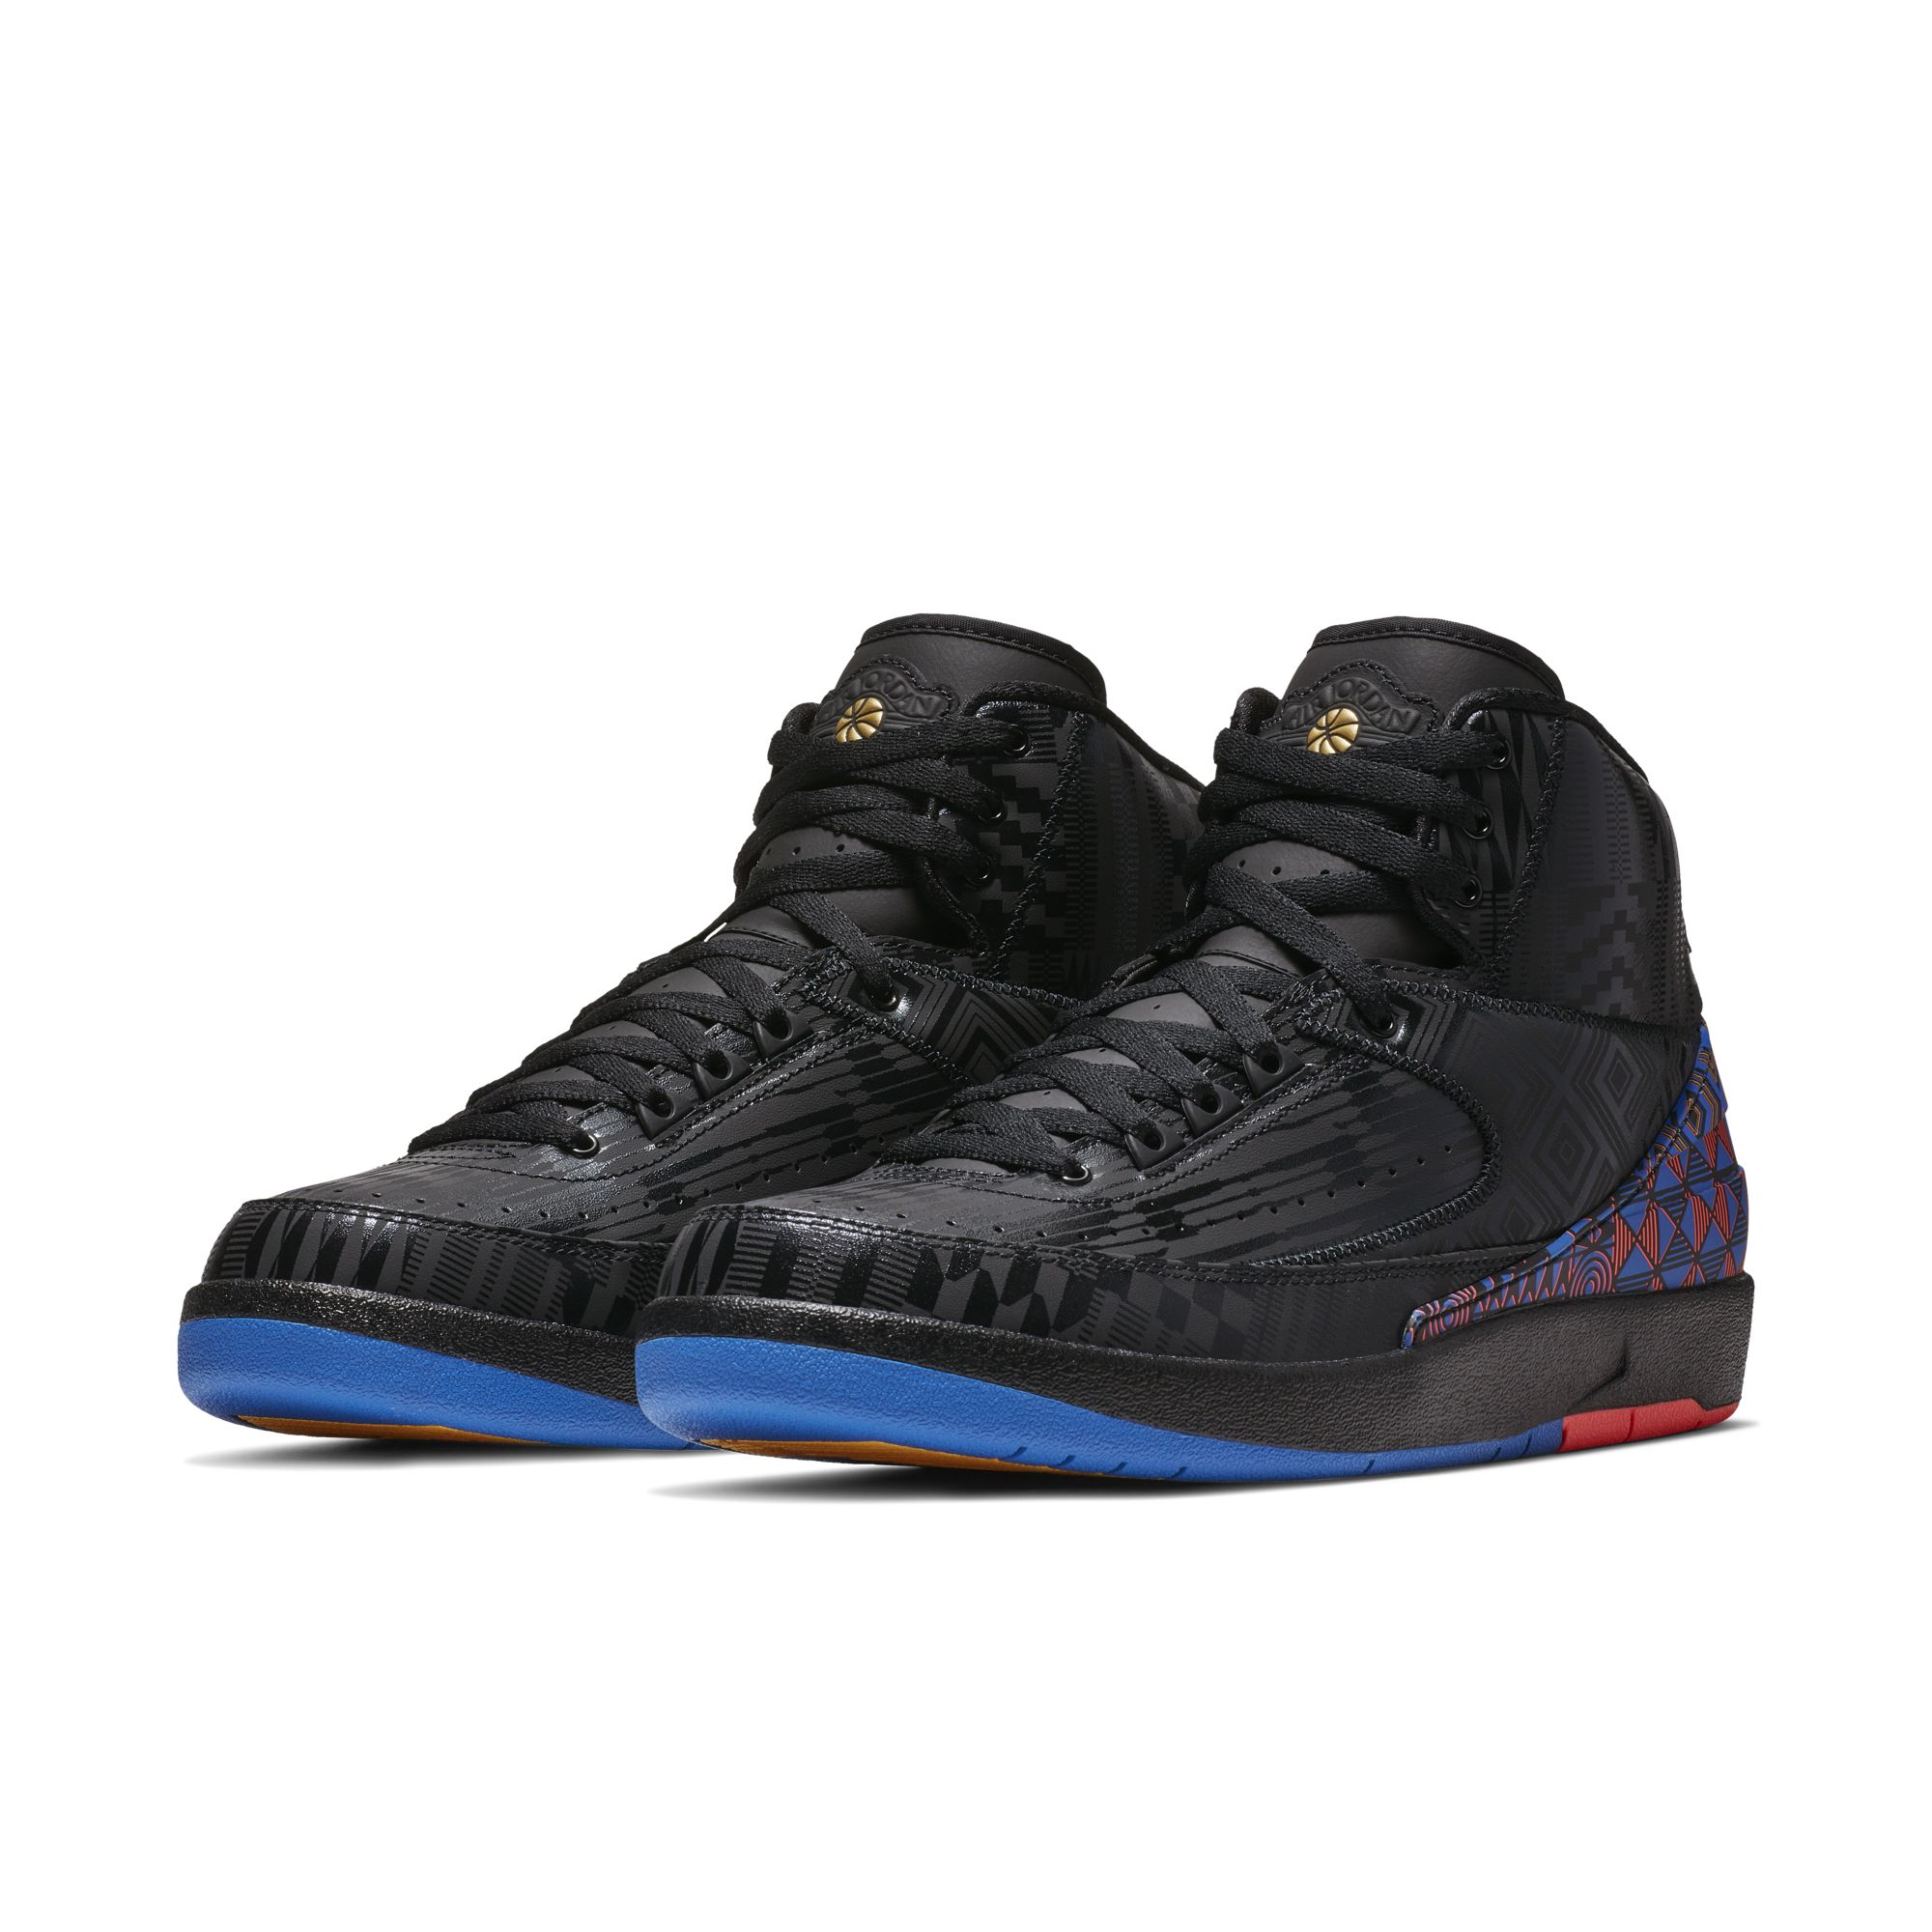 buy online 8de33 98074 A Black History Month Colorway for the Air Jordan 2 Retro is ...